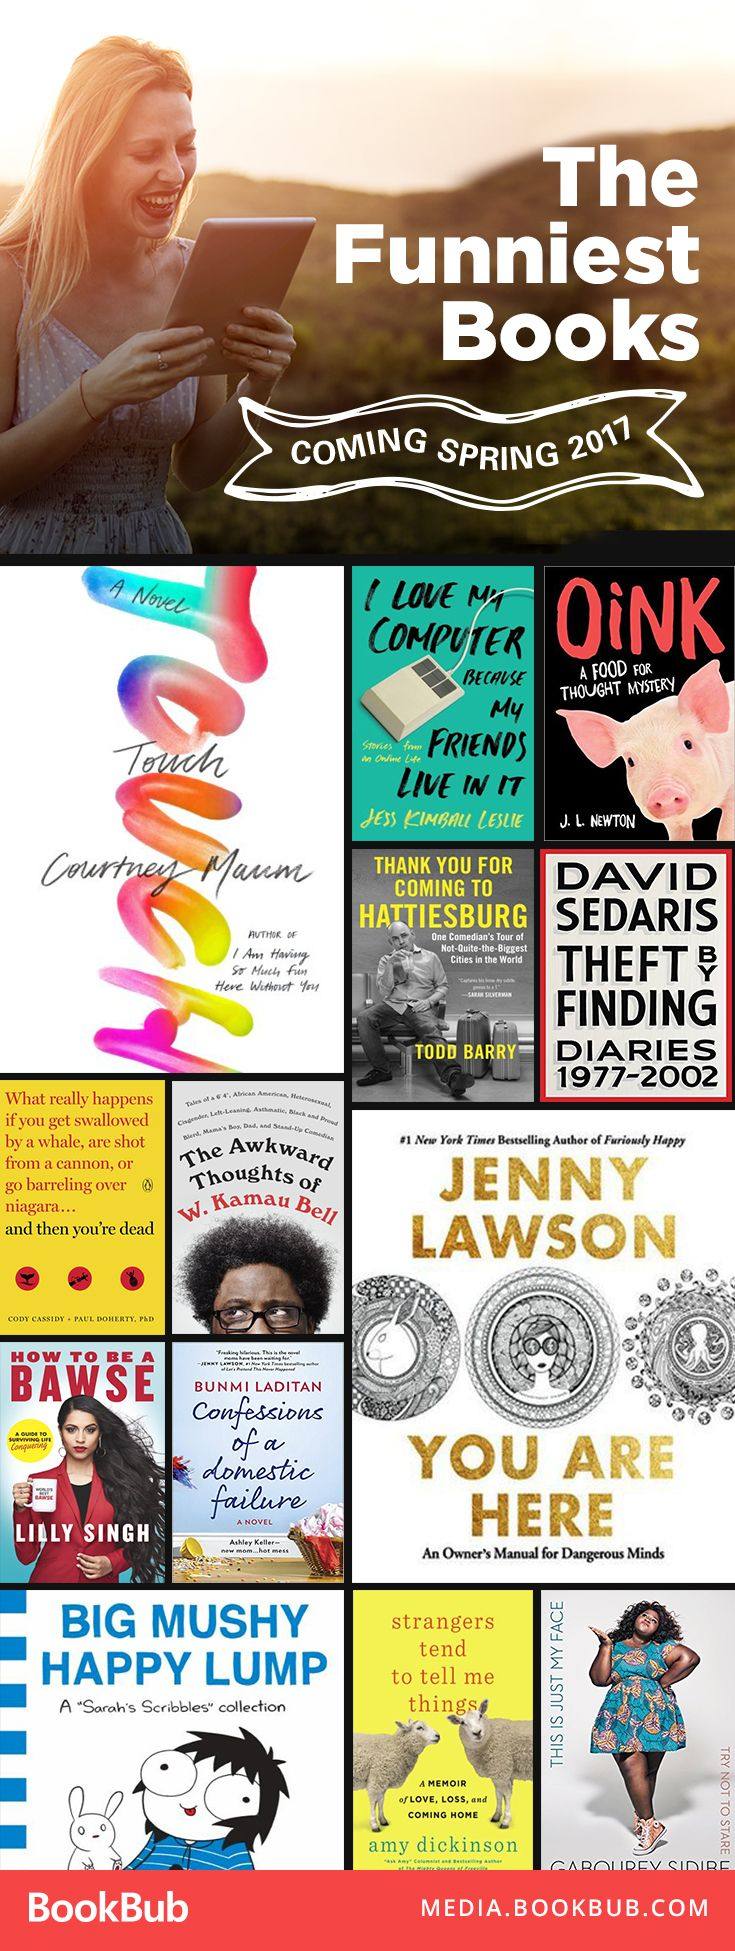 18 funny books to read this spring. These humor titles are sure to make you laugh out loud.